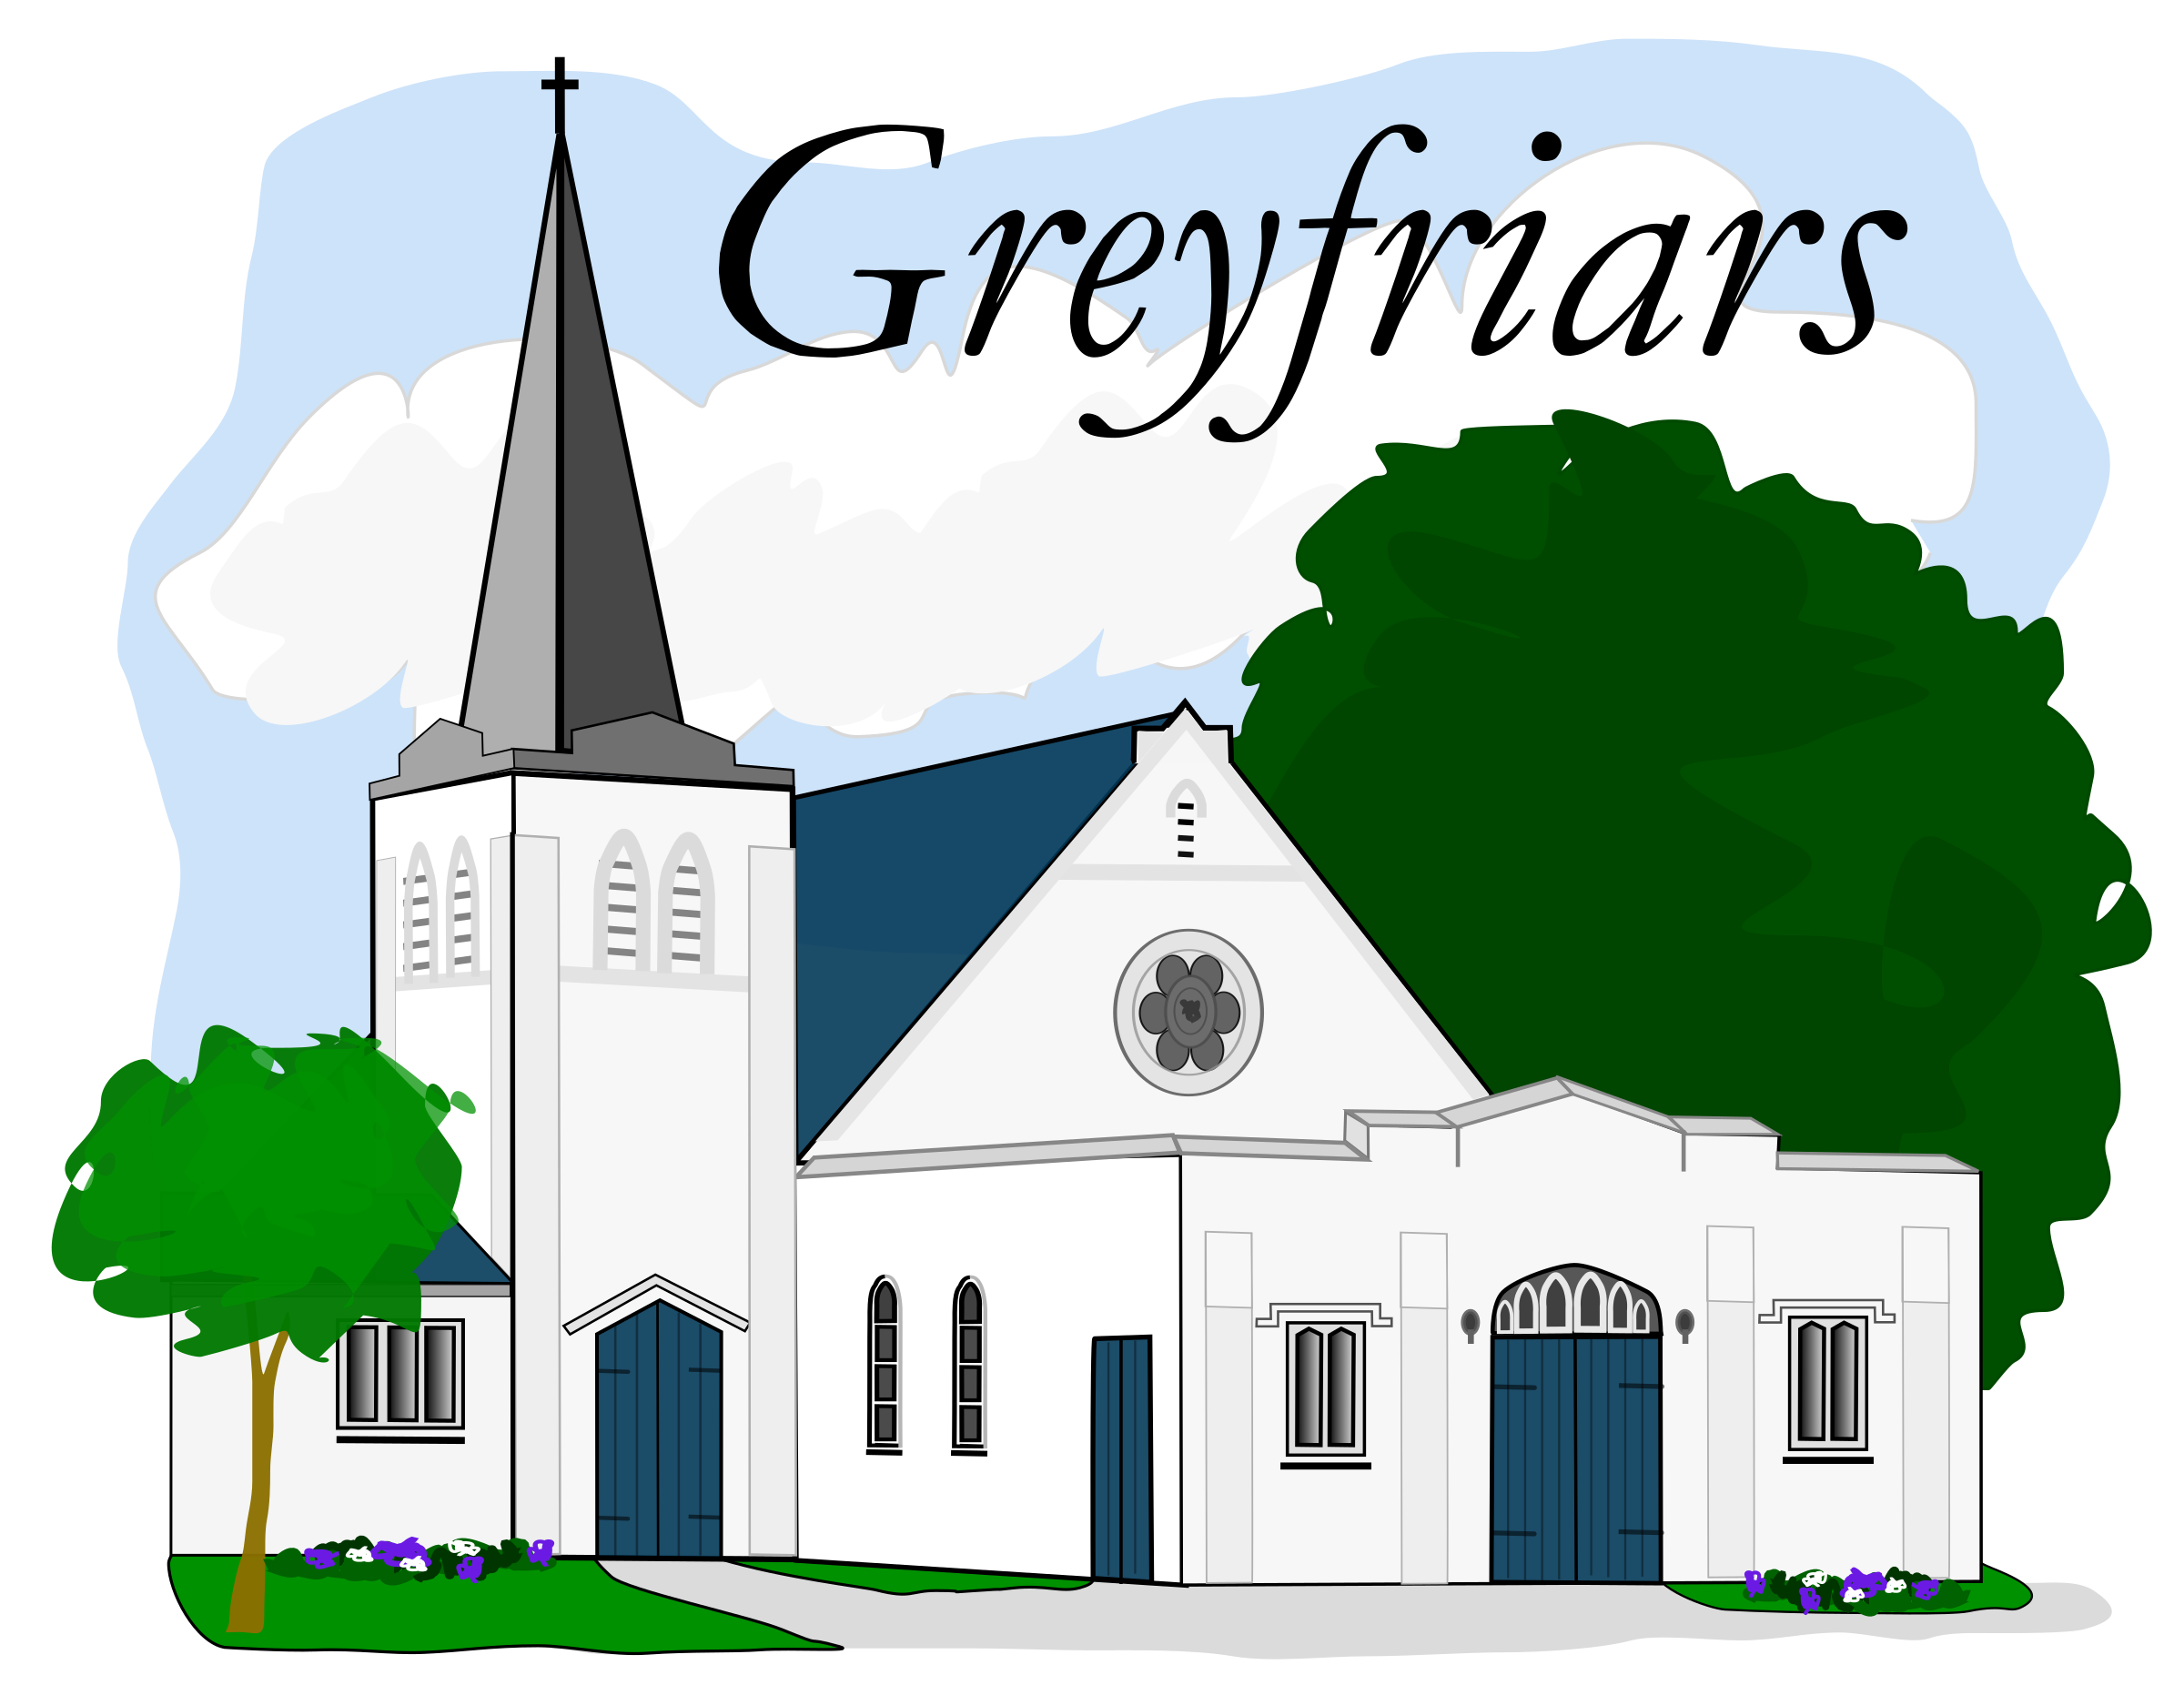 Greyfriars Church Mt Eden New Zealand by power2people